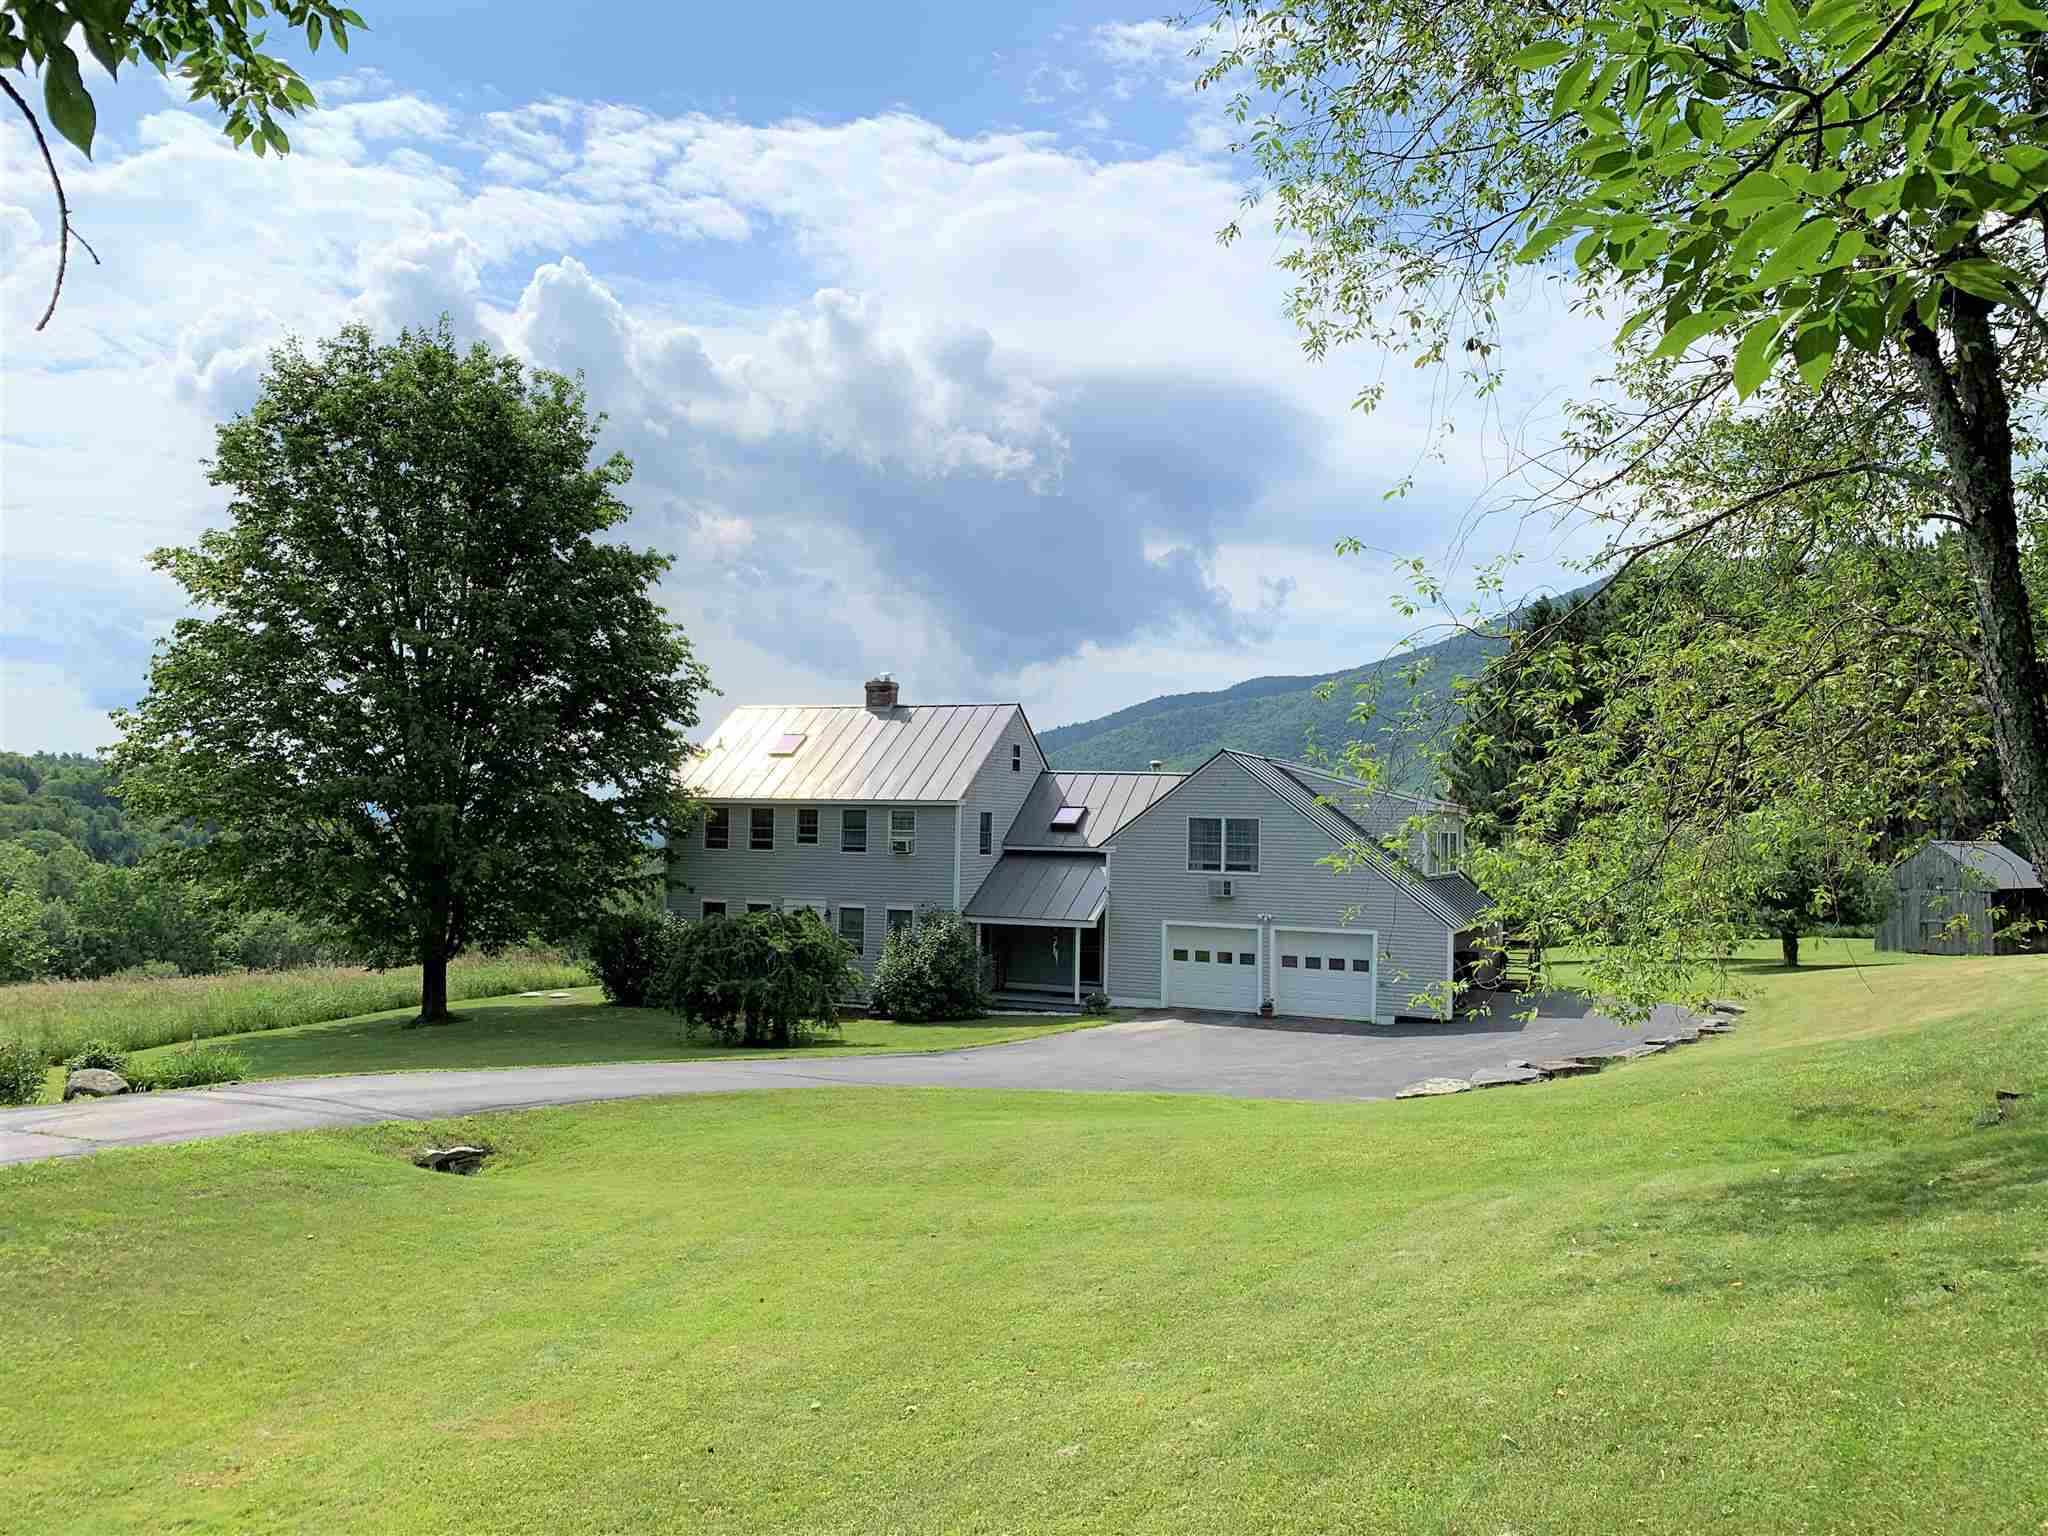 image of West Windsor VT Home | sq.ft. 3058